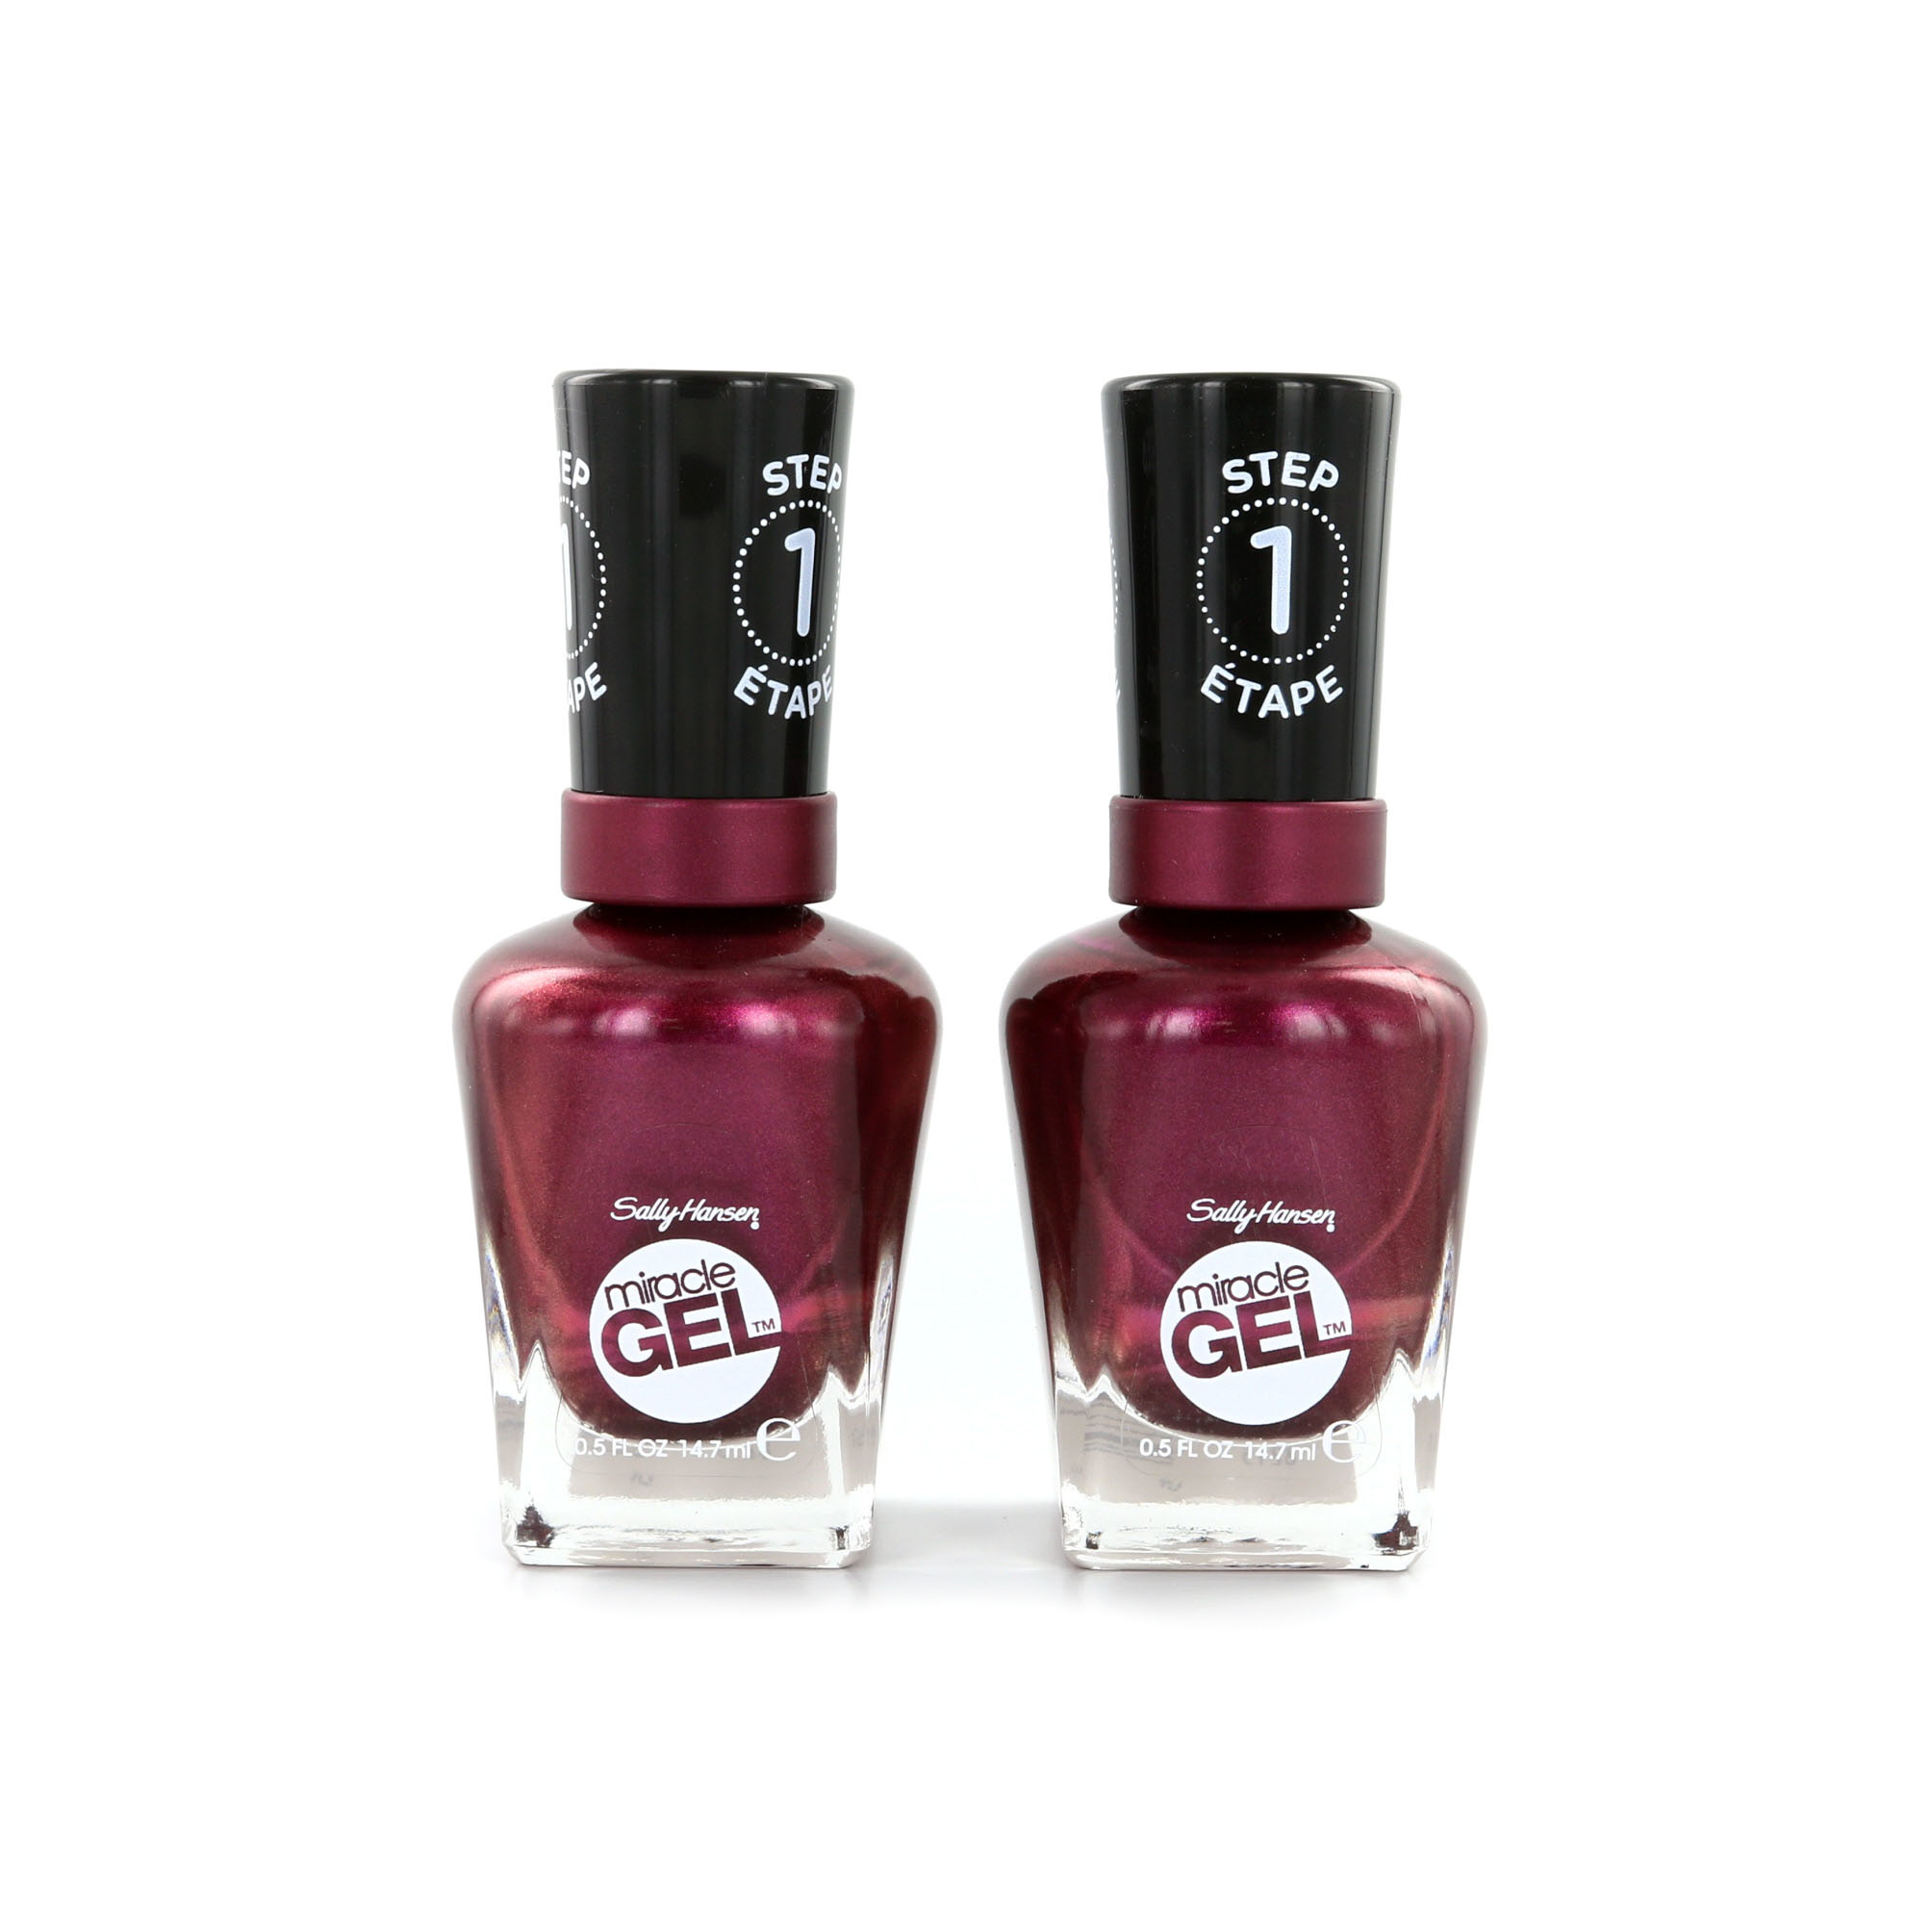 Sally Hansen Miracle Gel Nagellack 2 Stuks - 063 Frosted Berries